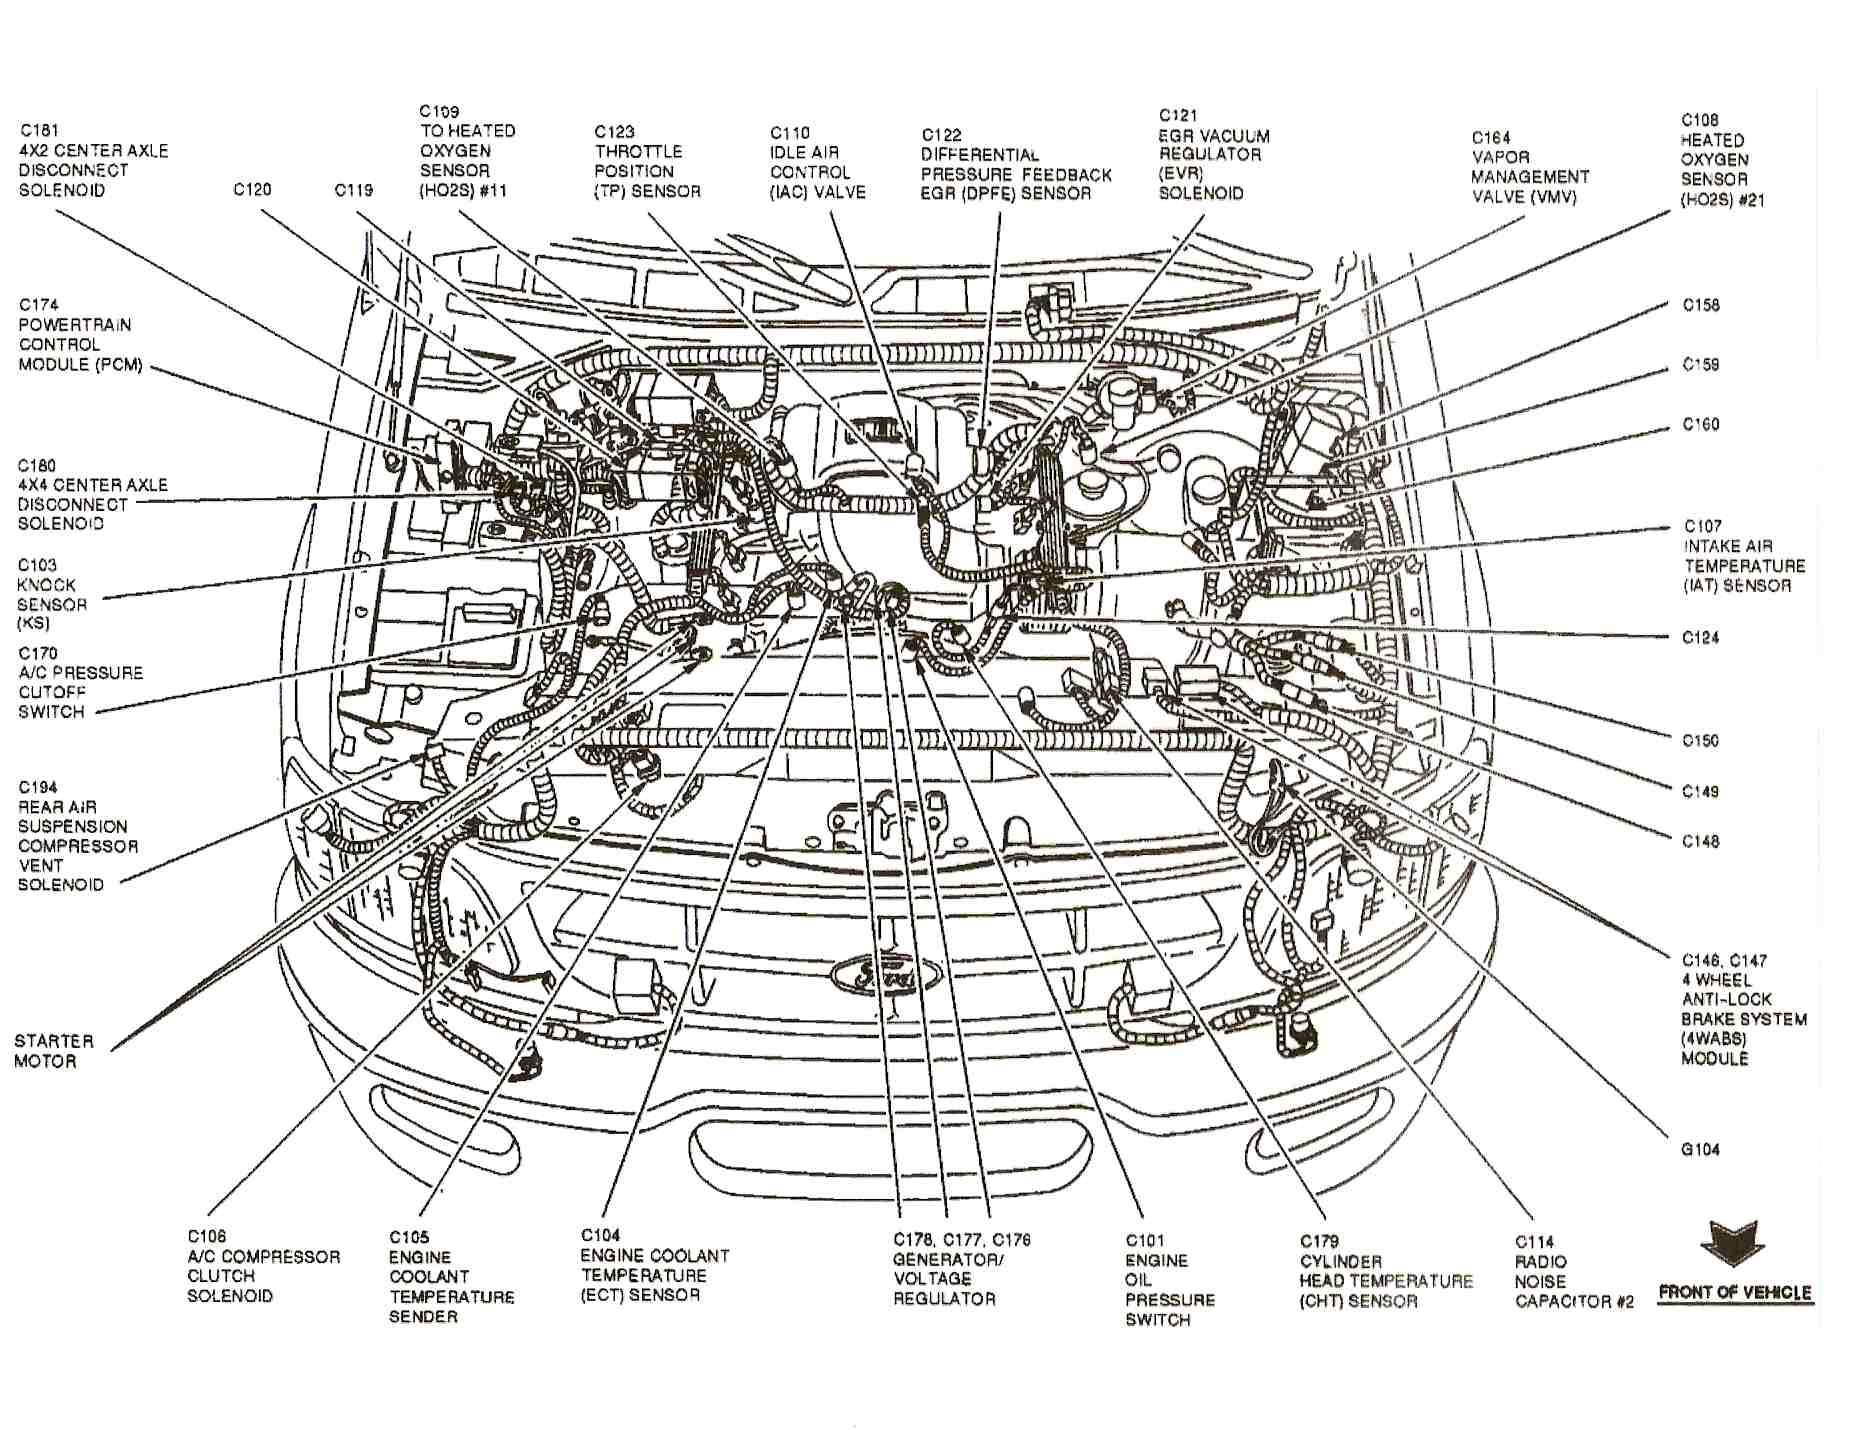 76 Ford F 150 Wiring Harness Diagram Ford Auto Wiring